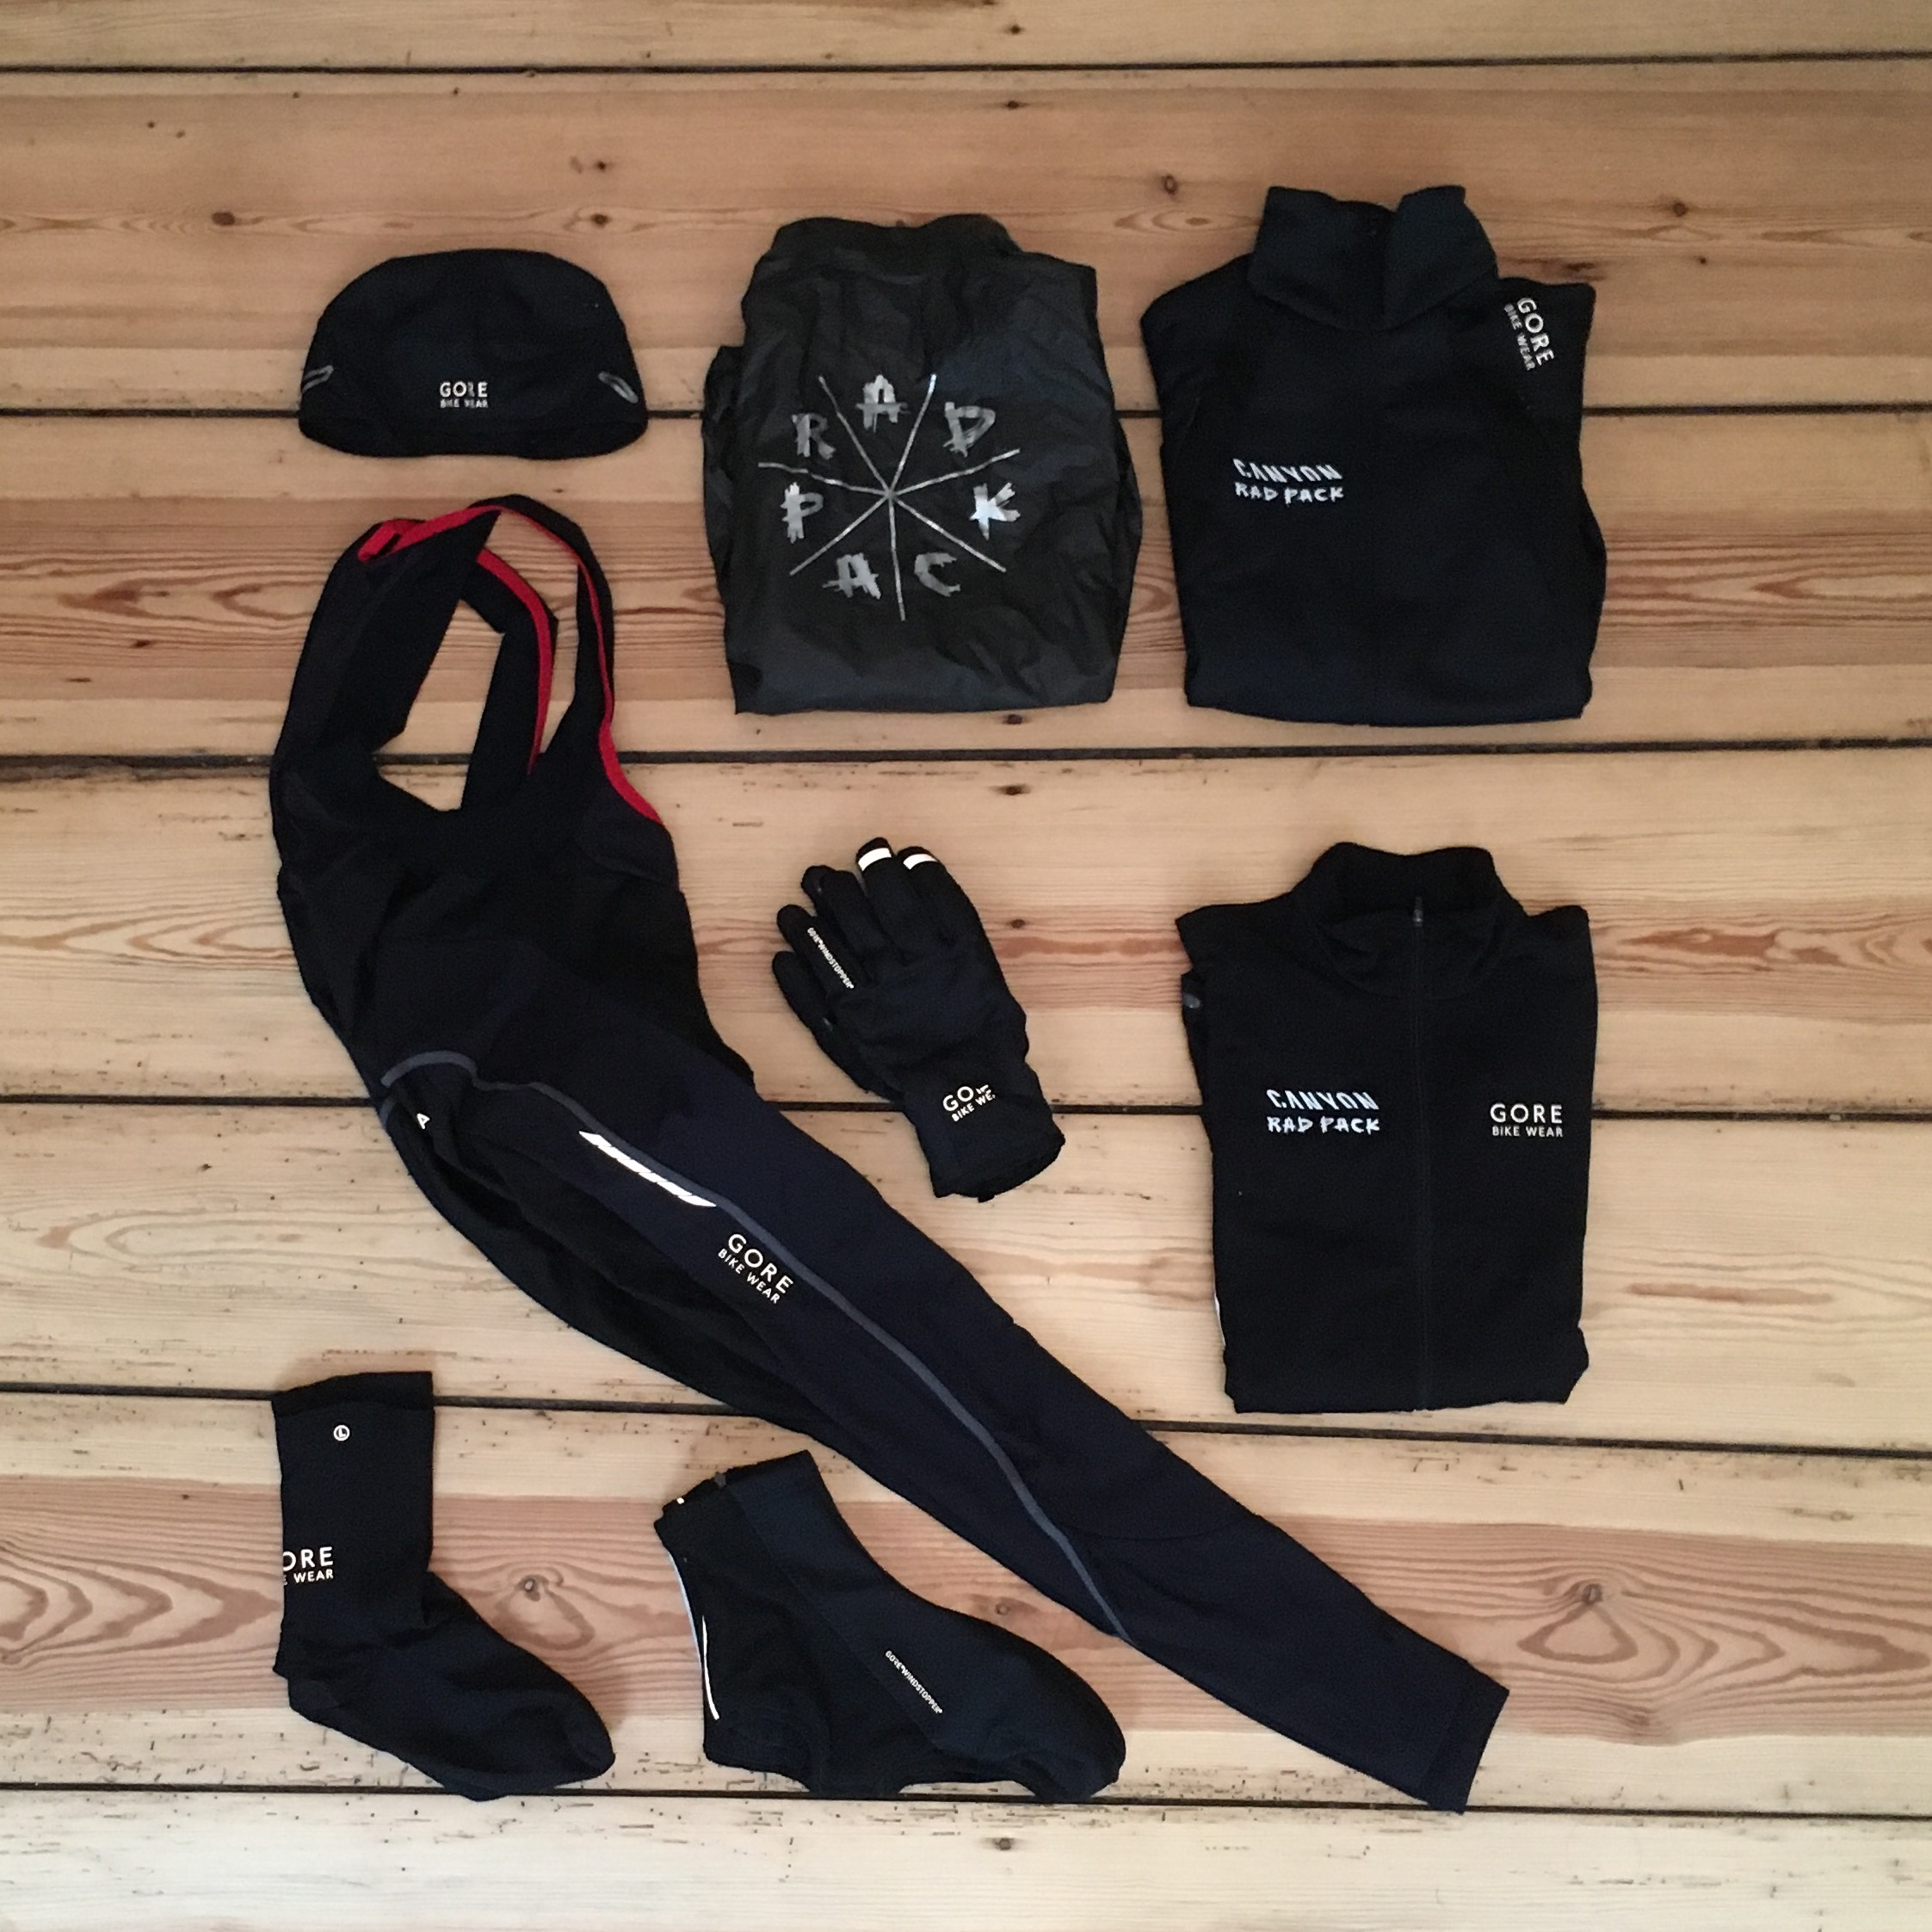 RAD PACK x GORE BIKE WEAR